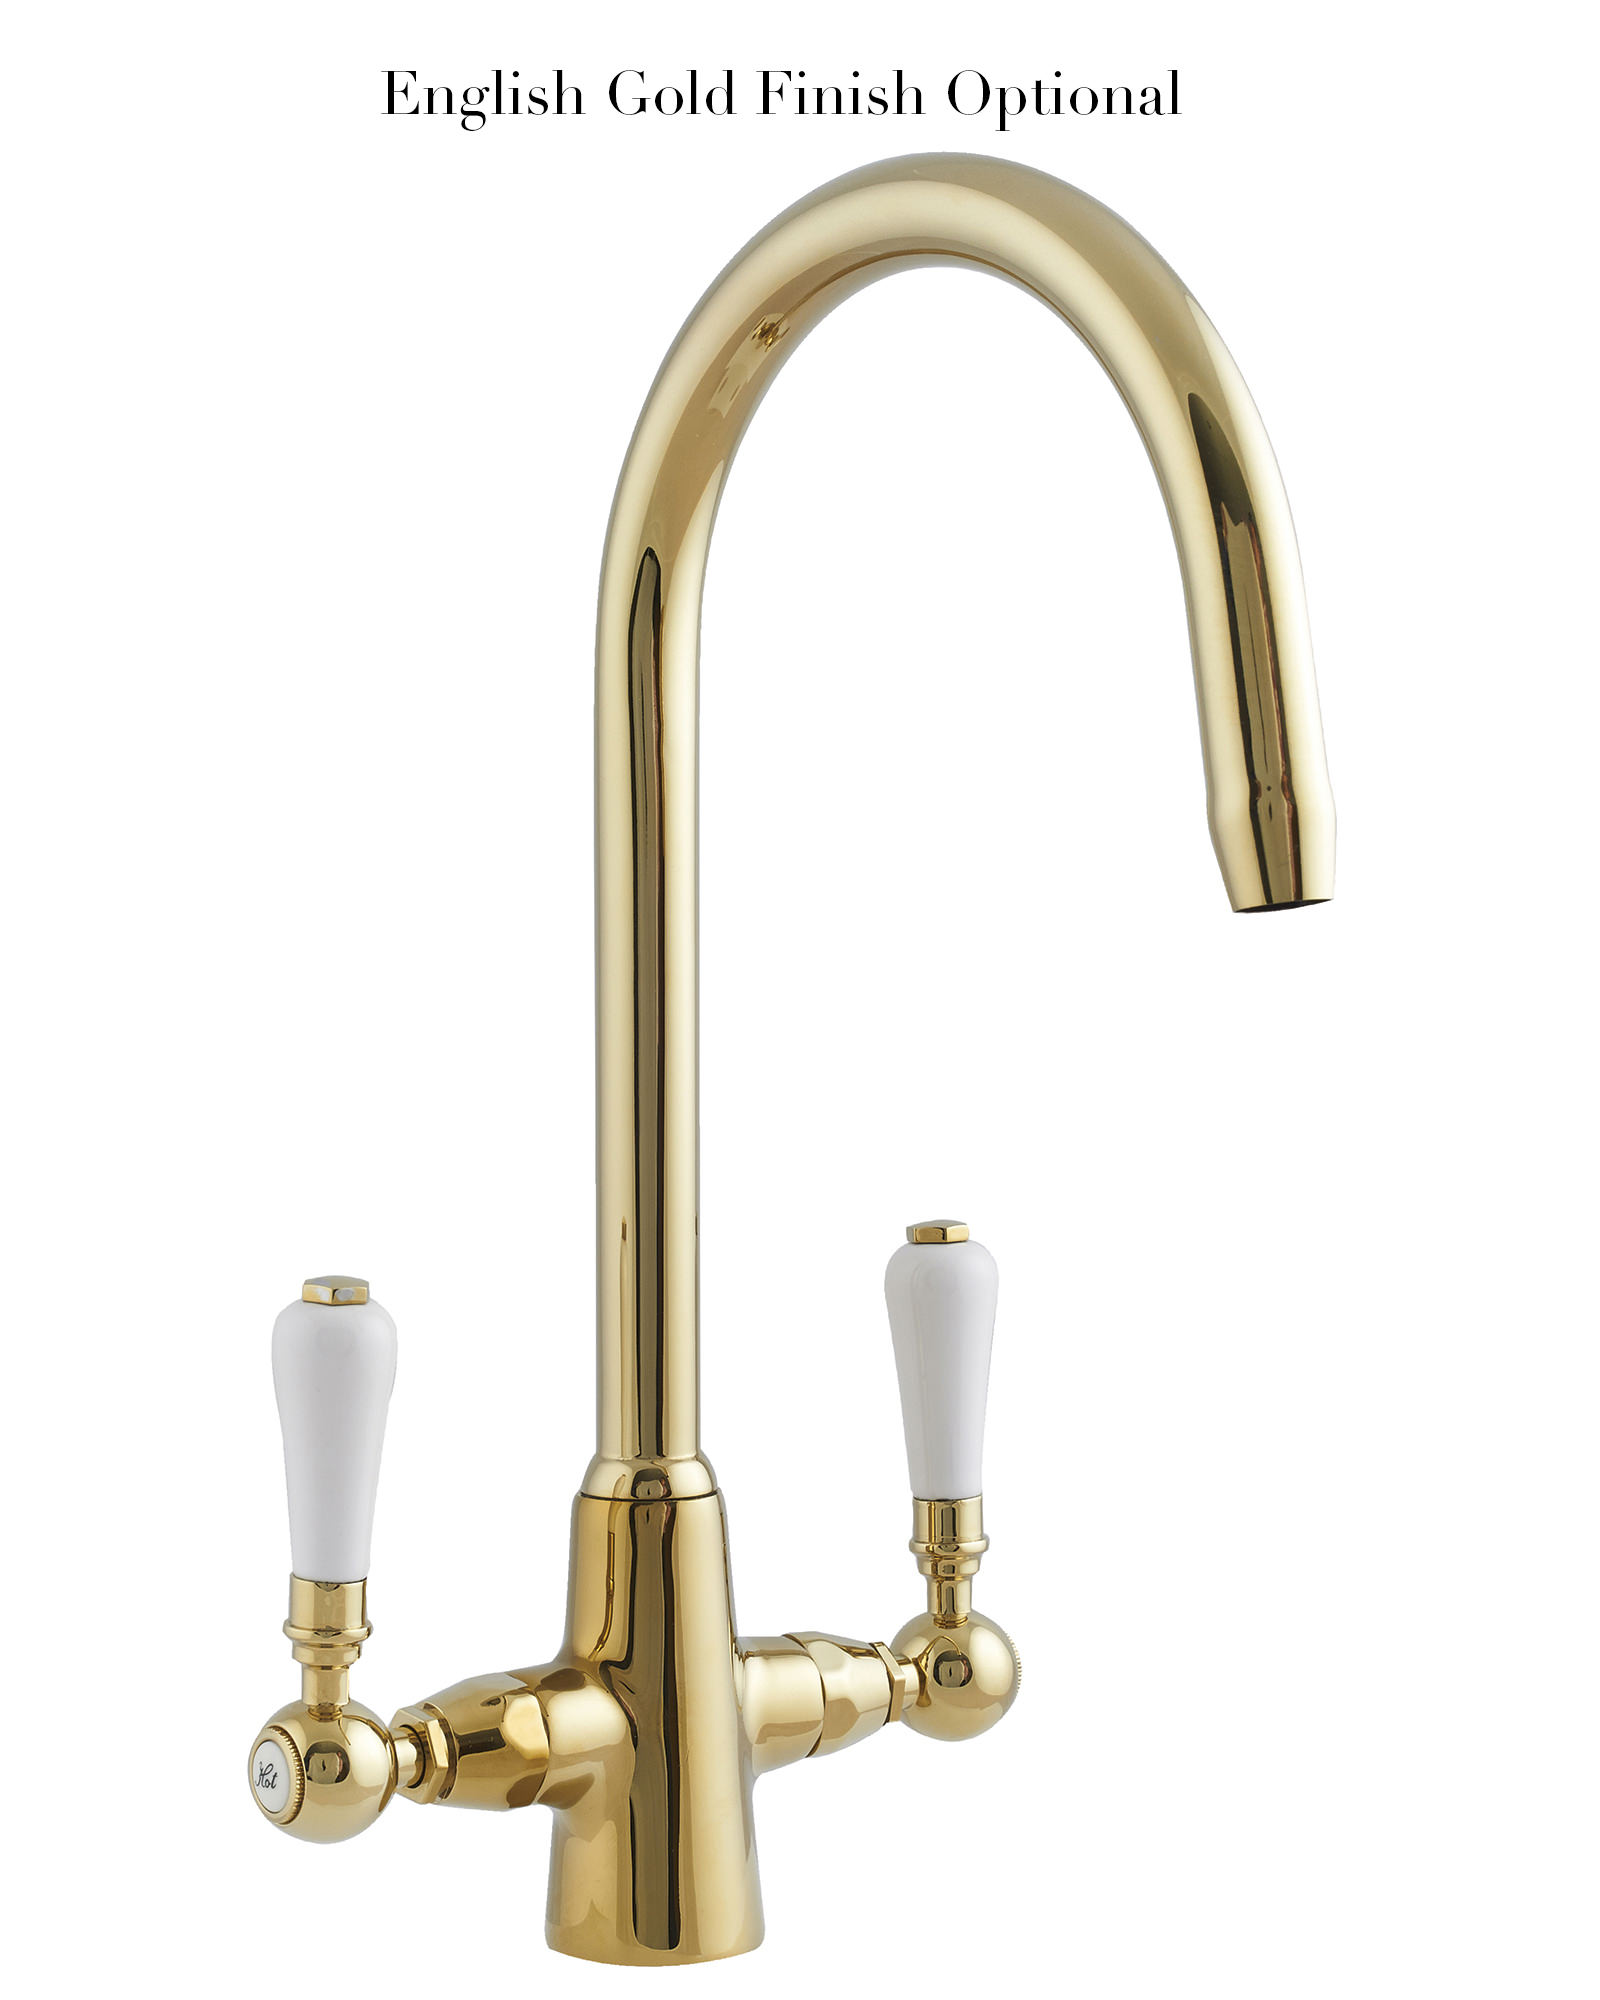 colonial kitchen sink Alternate image of Astracast Colonial Monobloc Twin Lever Kitchen Sink Mixer Tap